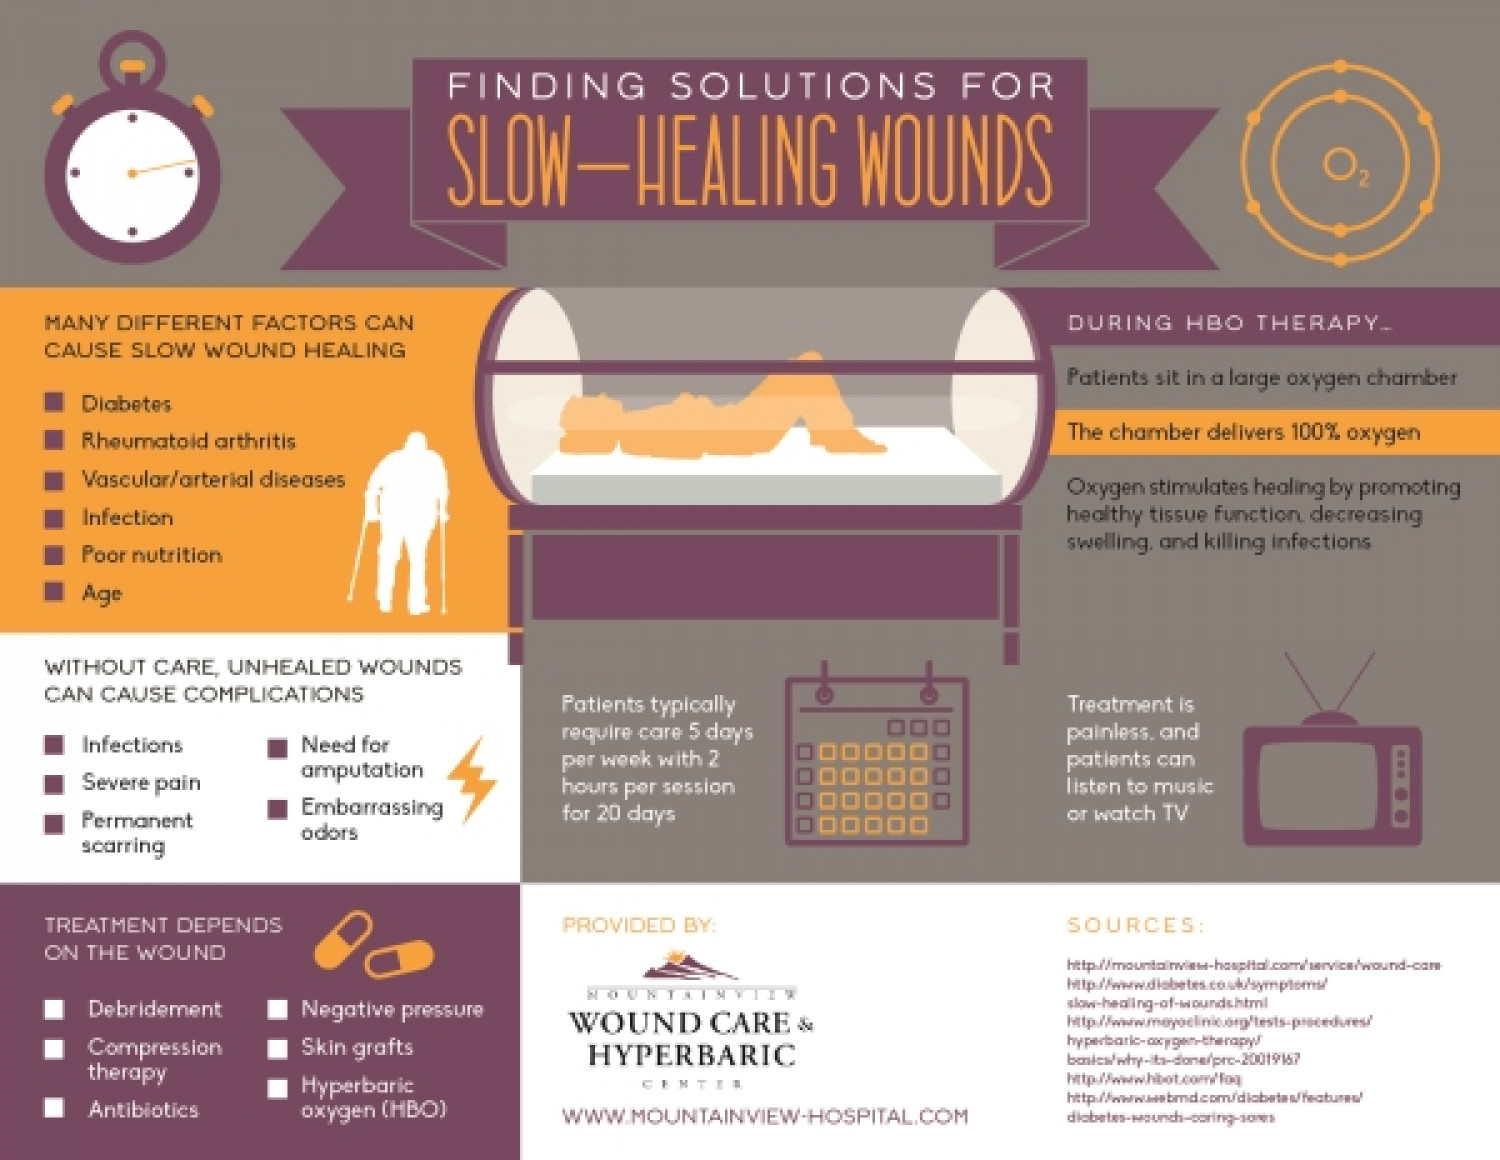 Finding Solutions for Slow-Healing Wounds Infographic